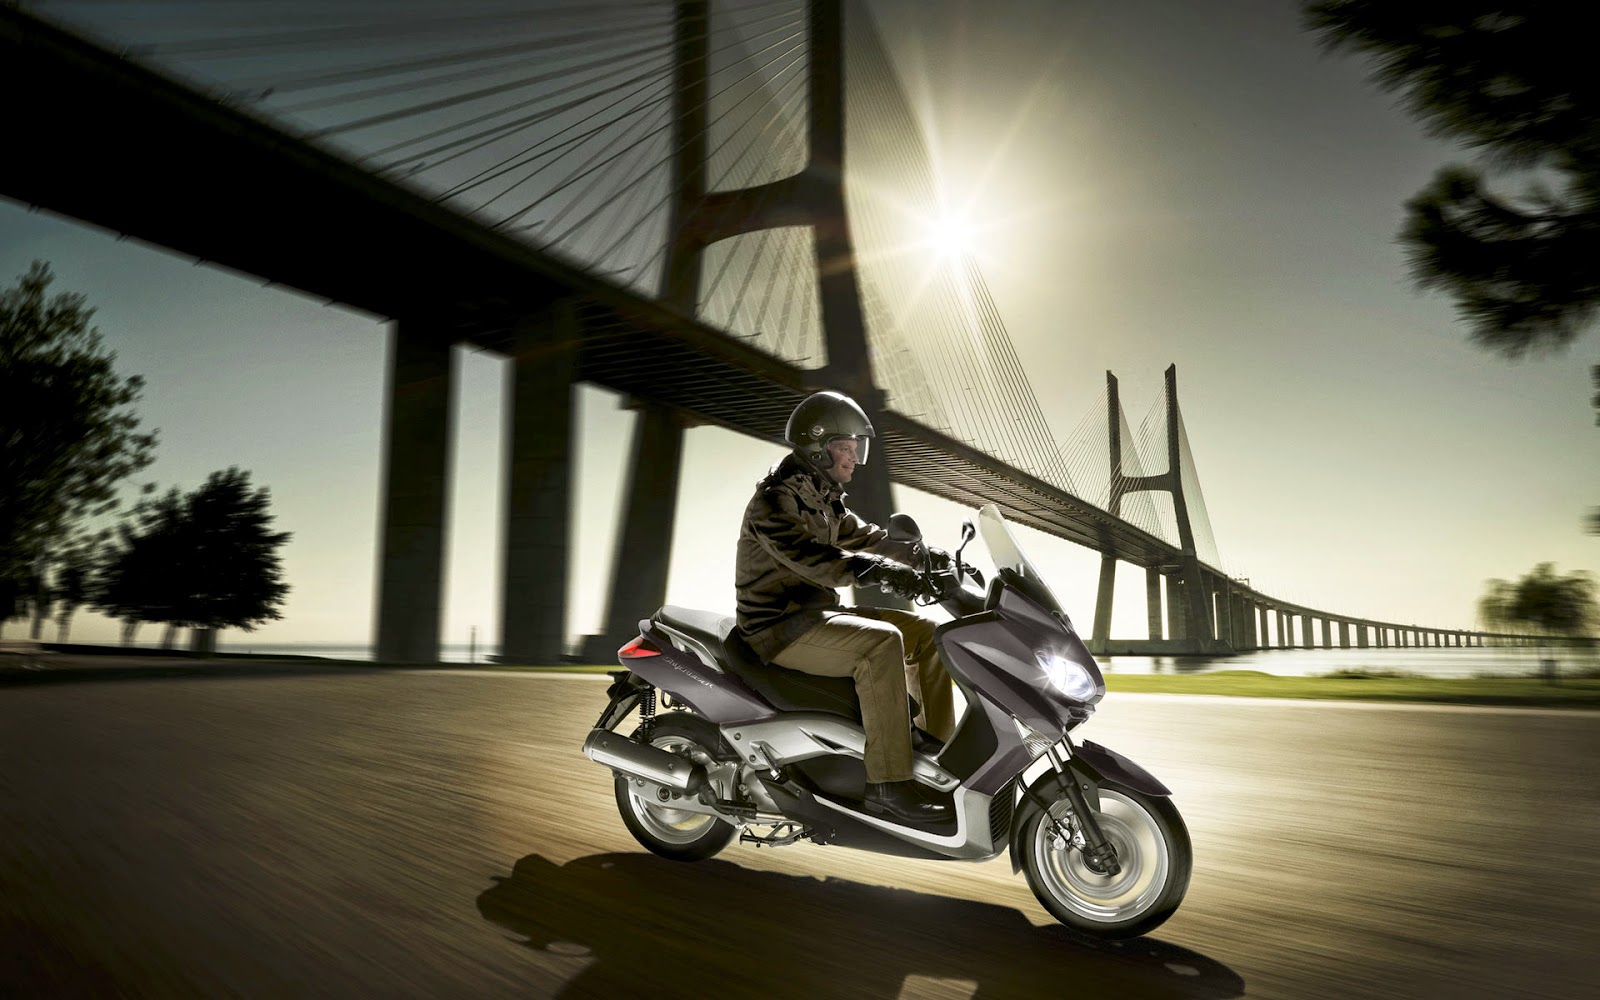 MBK Skycruiser New 125 cc Scooty Photo Gallery